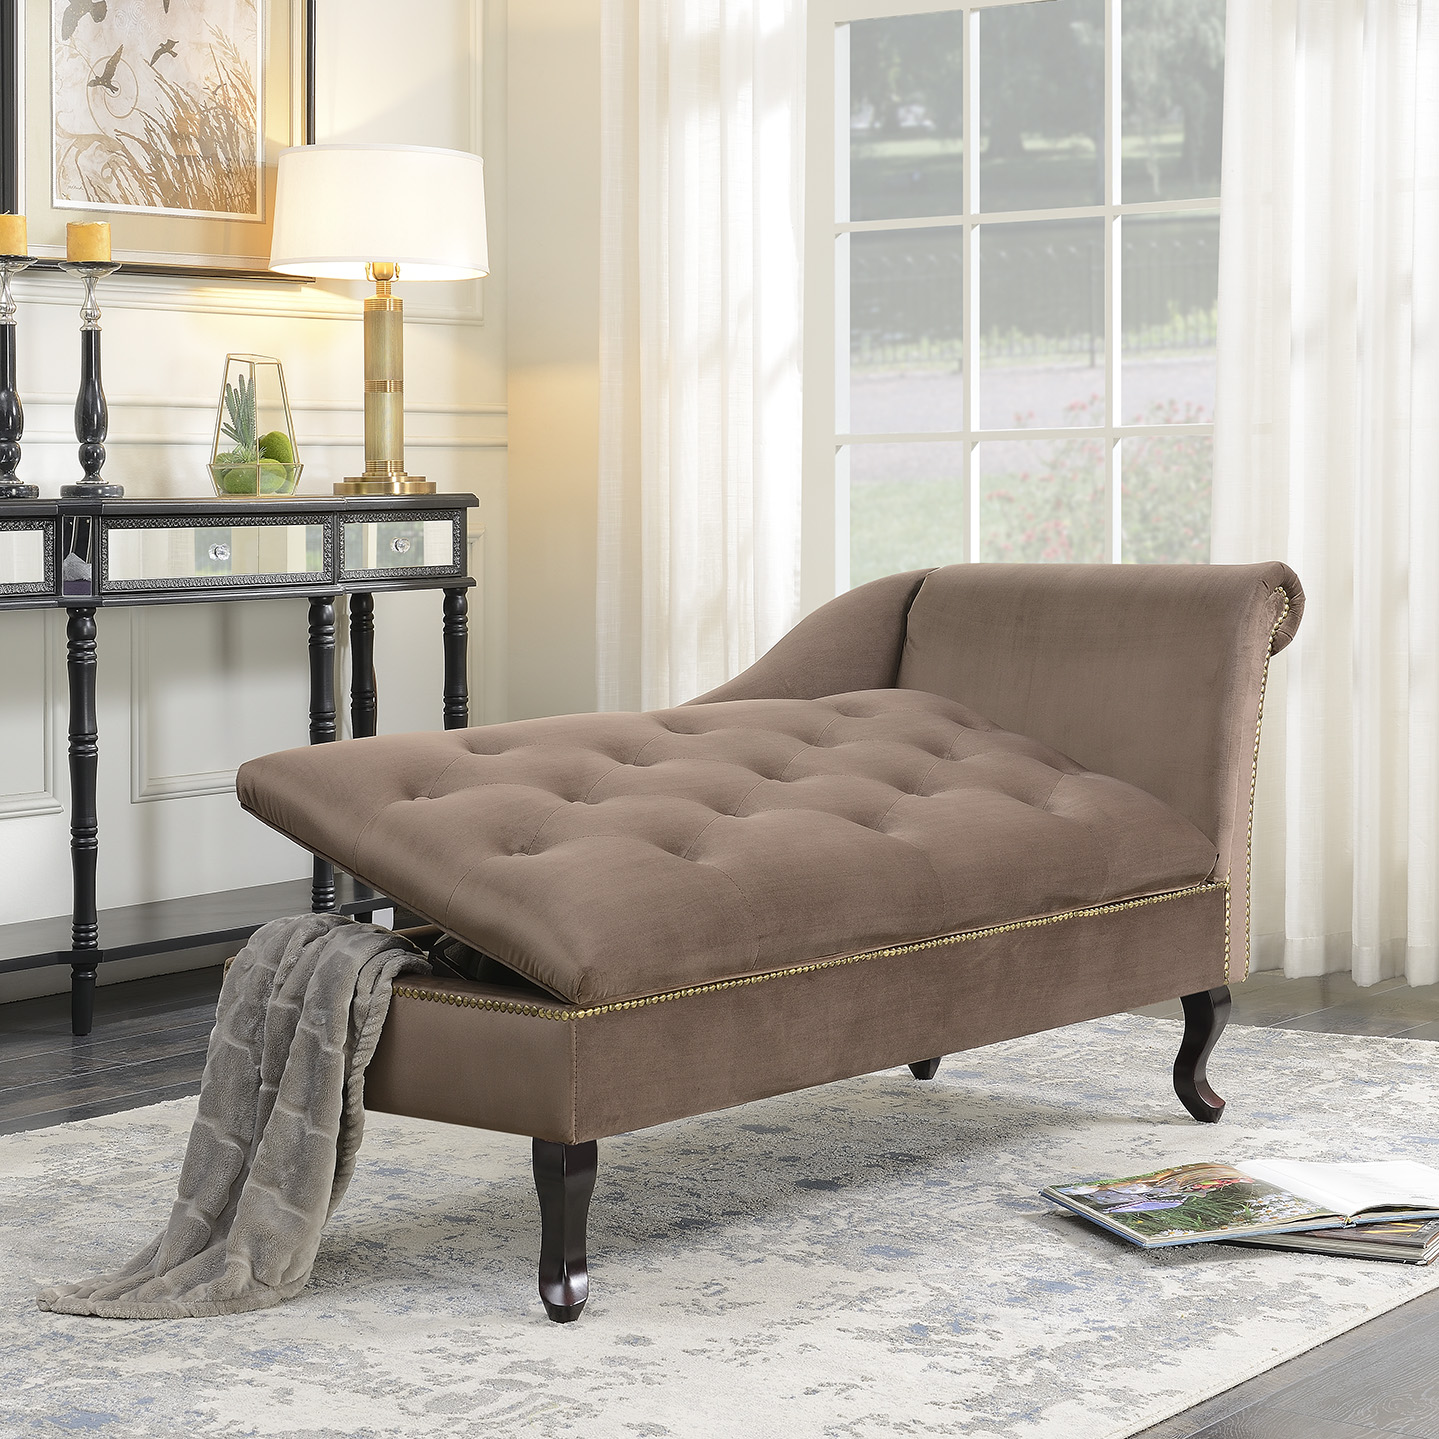 Belleze Velveteen Tufted Open Fold Spa Chaise Lounge Chiar Couch For Living  Room Gold Nailhead Trim